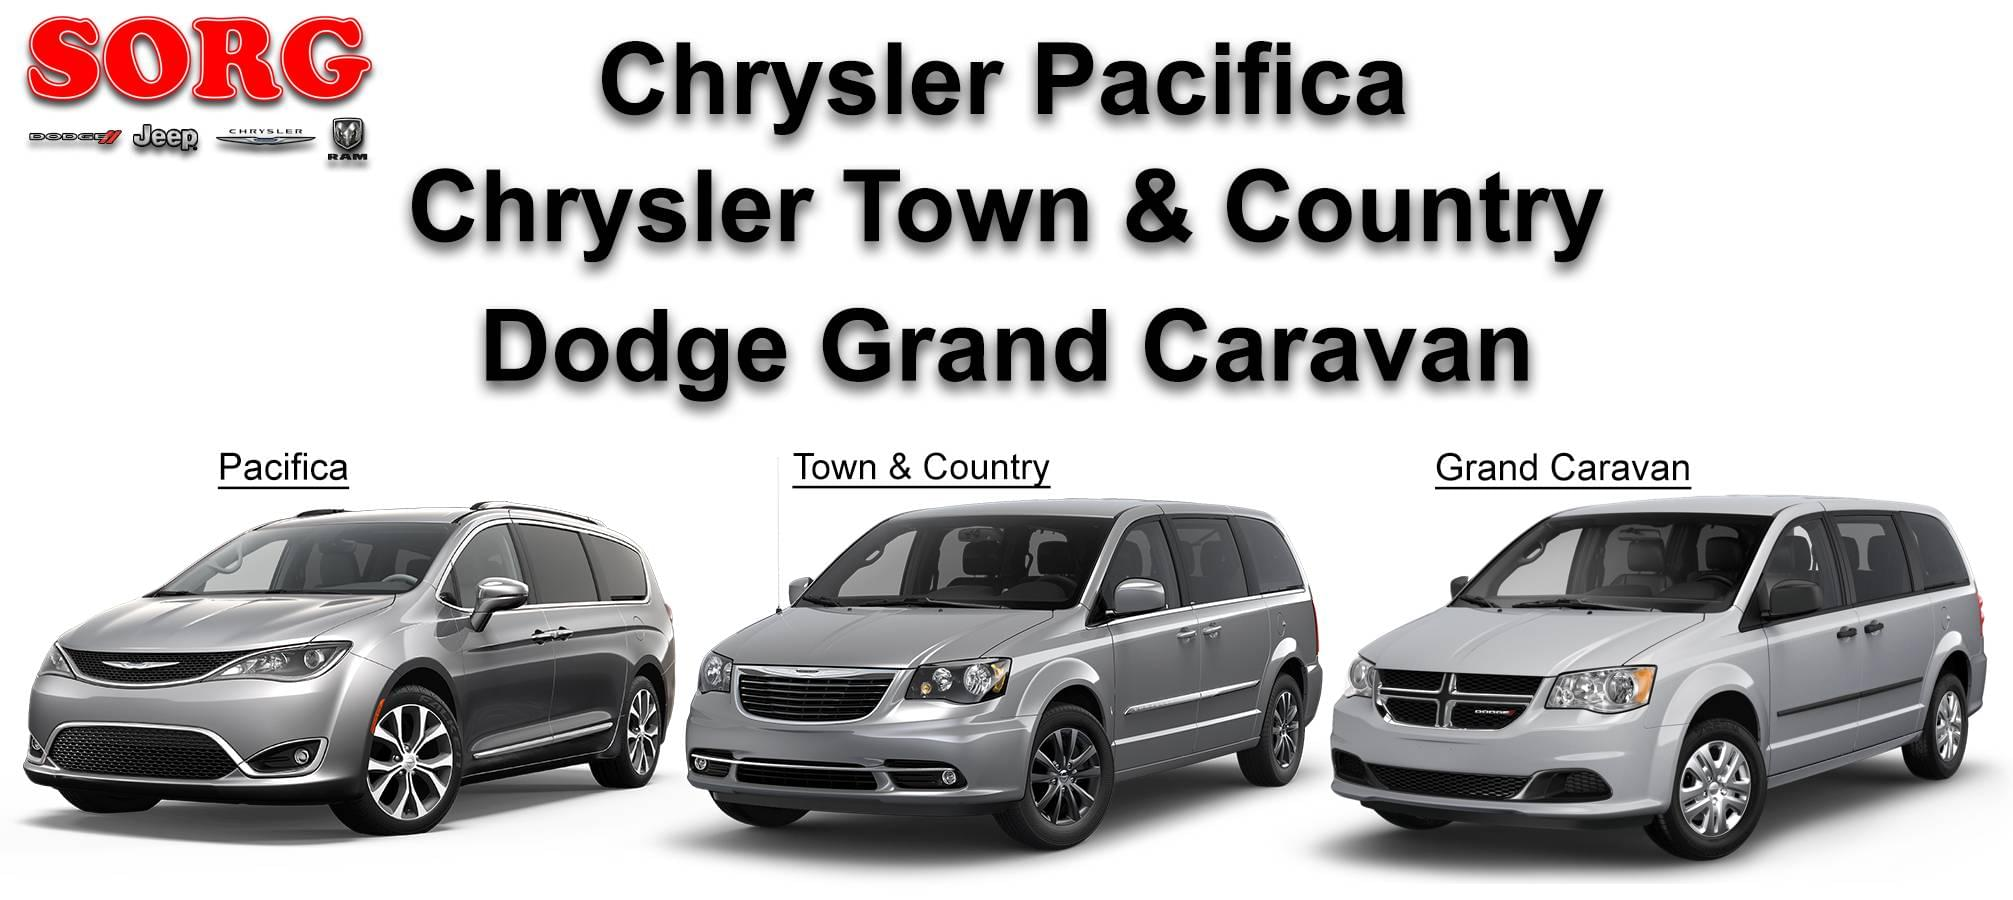 minivans chrysler pacifica dodge grand caravan